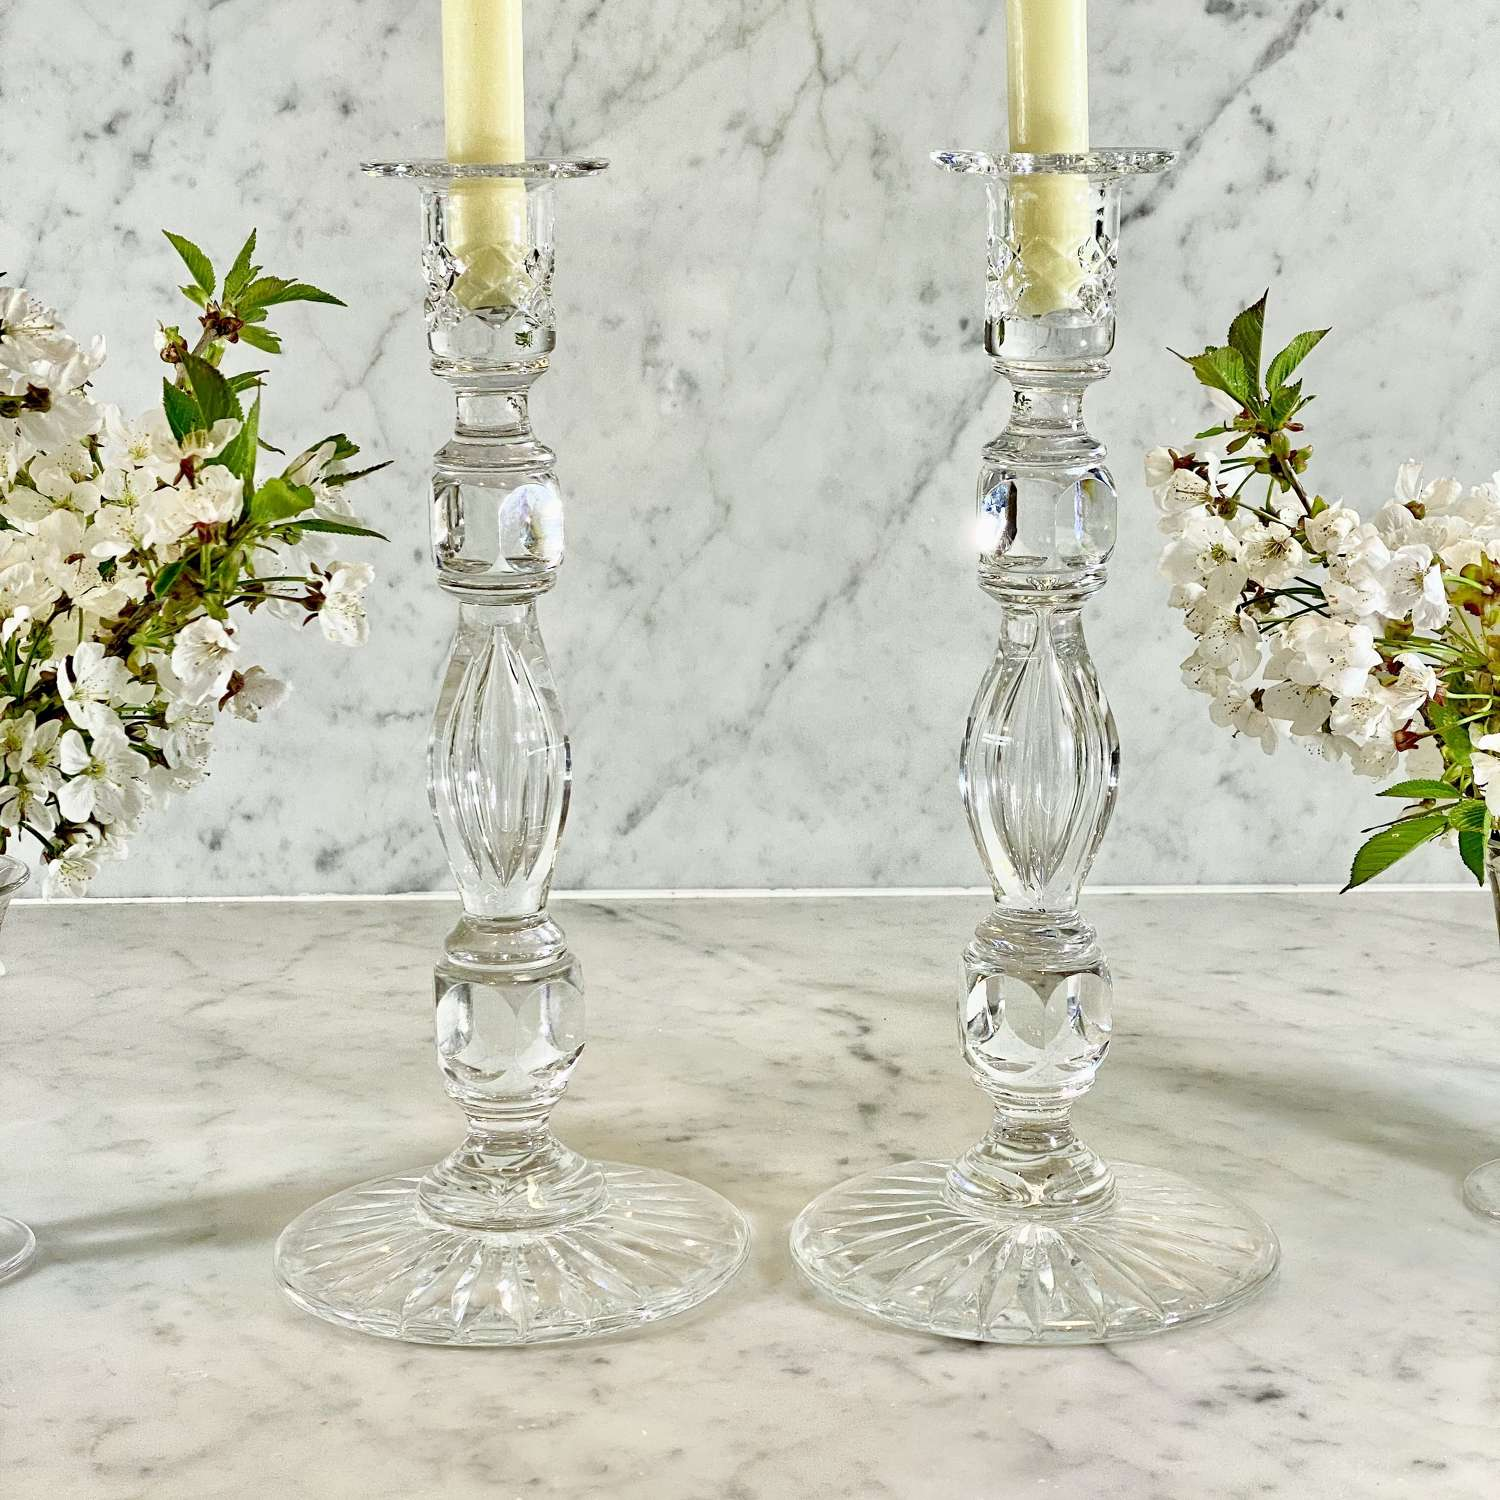 Gorgeous Georgian style lead crystal tall candlesticks